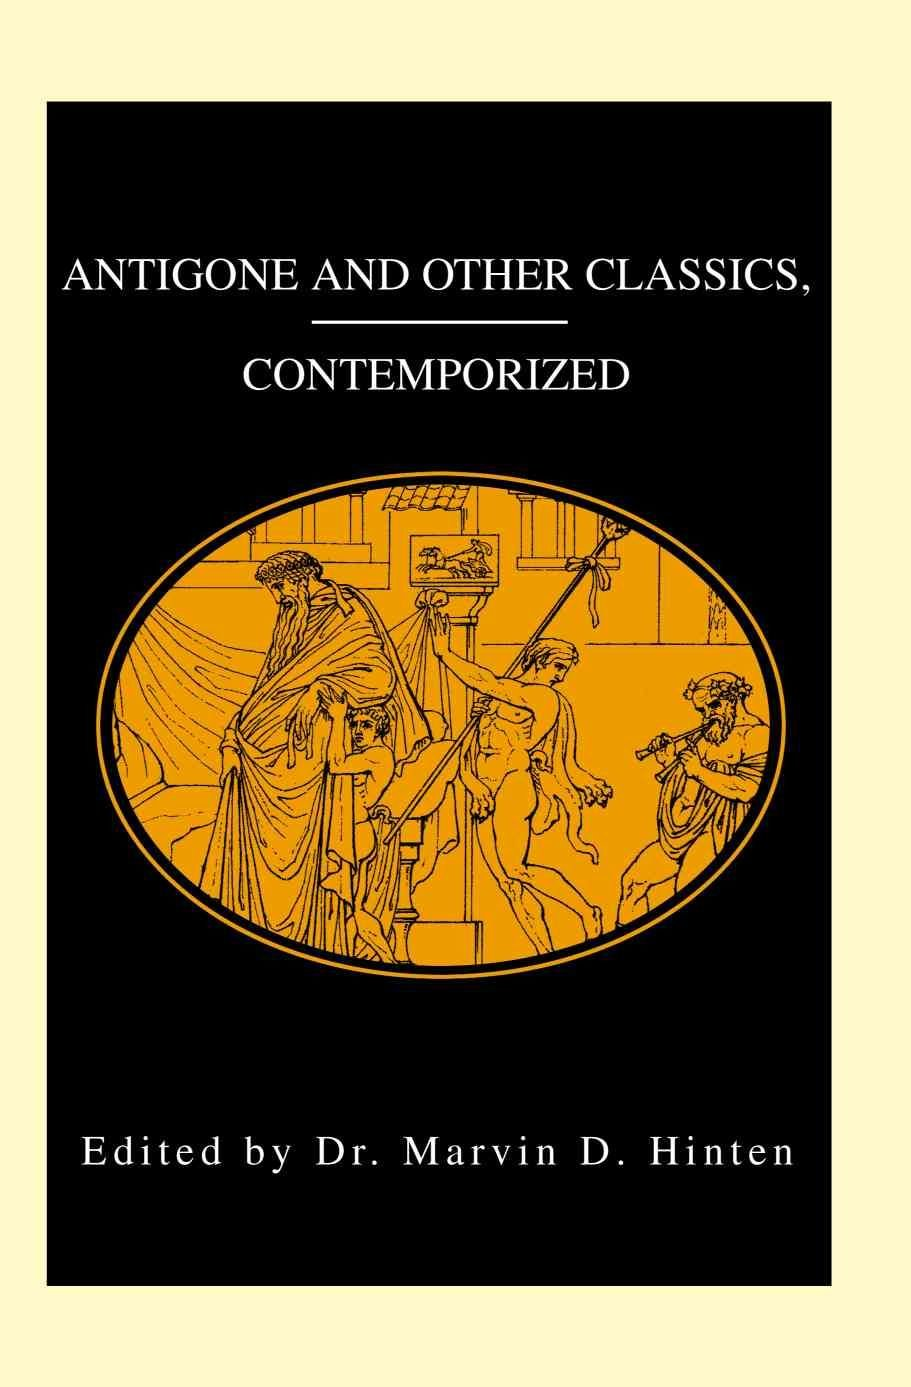 Antigone and Other Classics, Contemporized - Marvin D Hinten